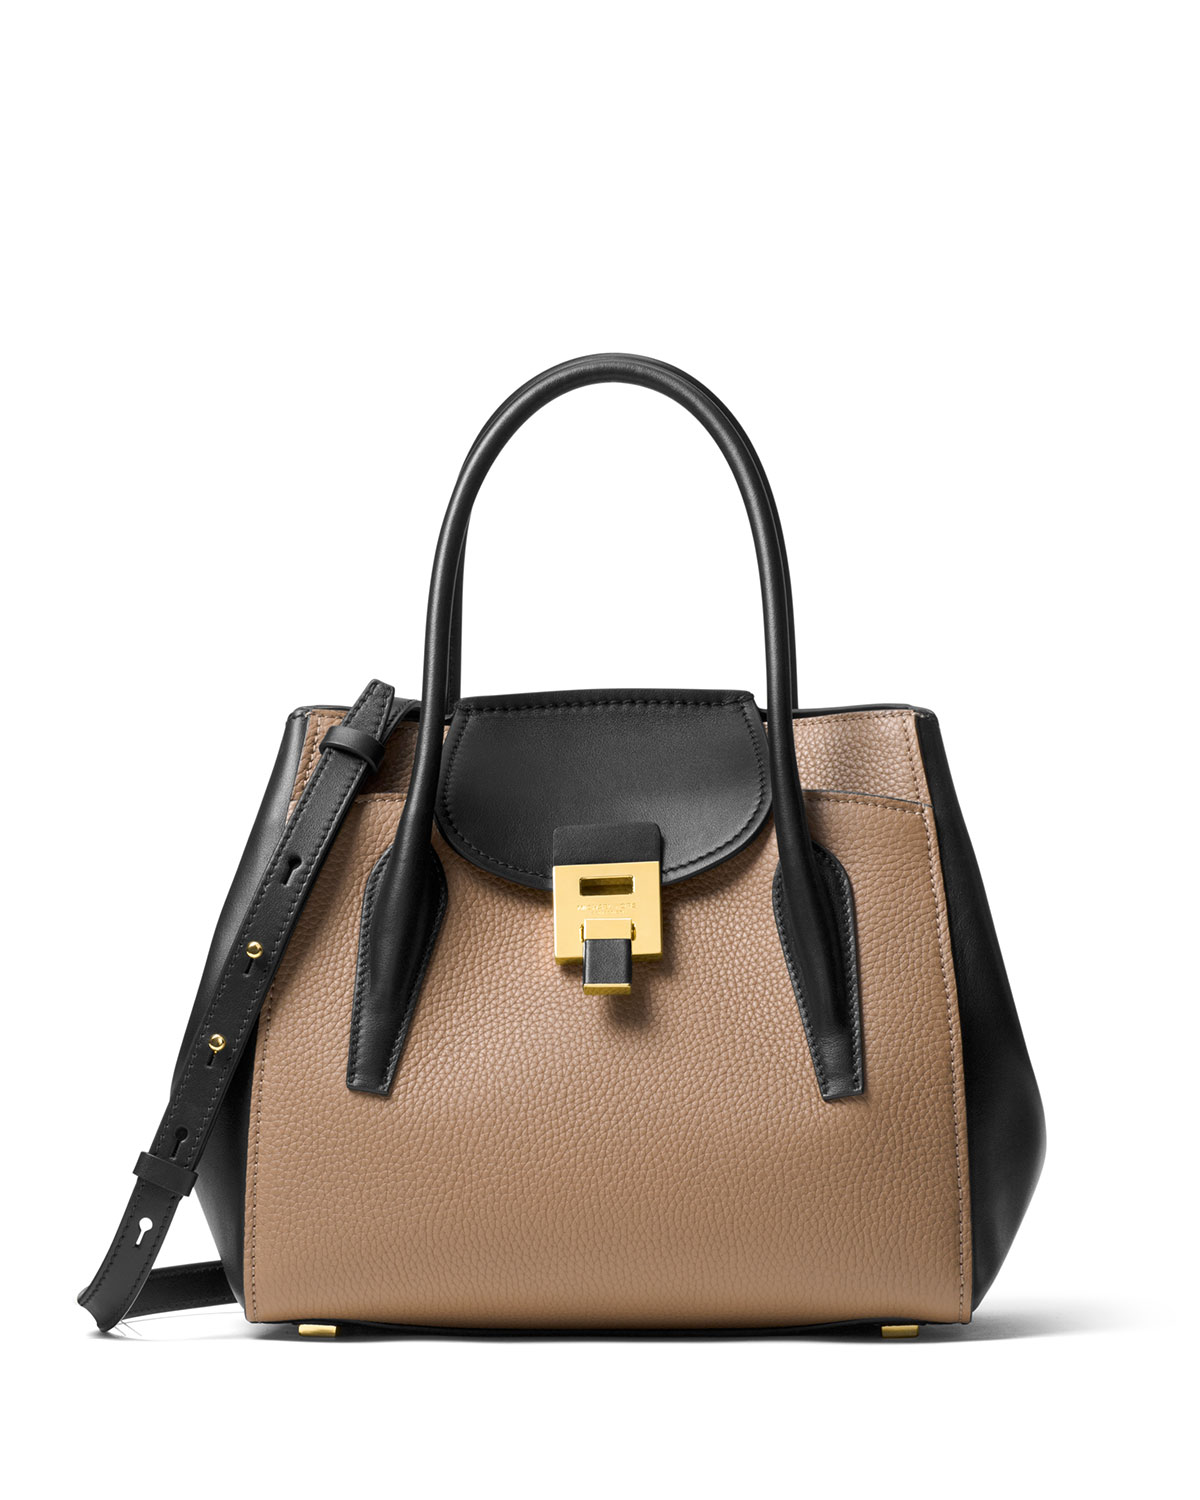 56b653da44b5 Michael Kors Bancroft Medium Two-Tone Tote Bag